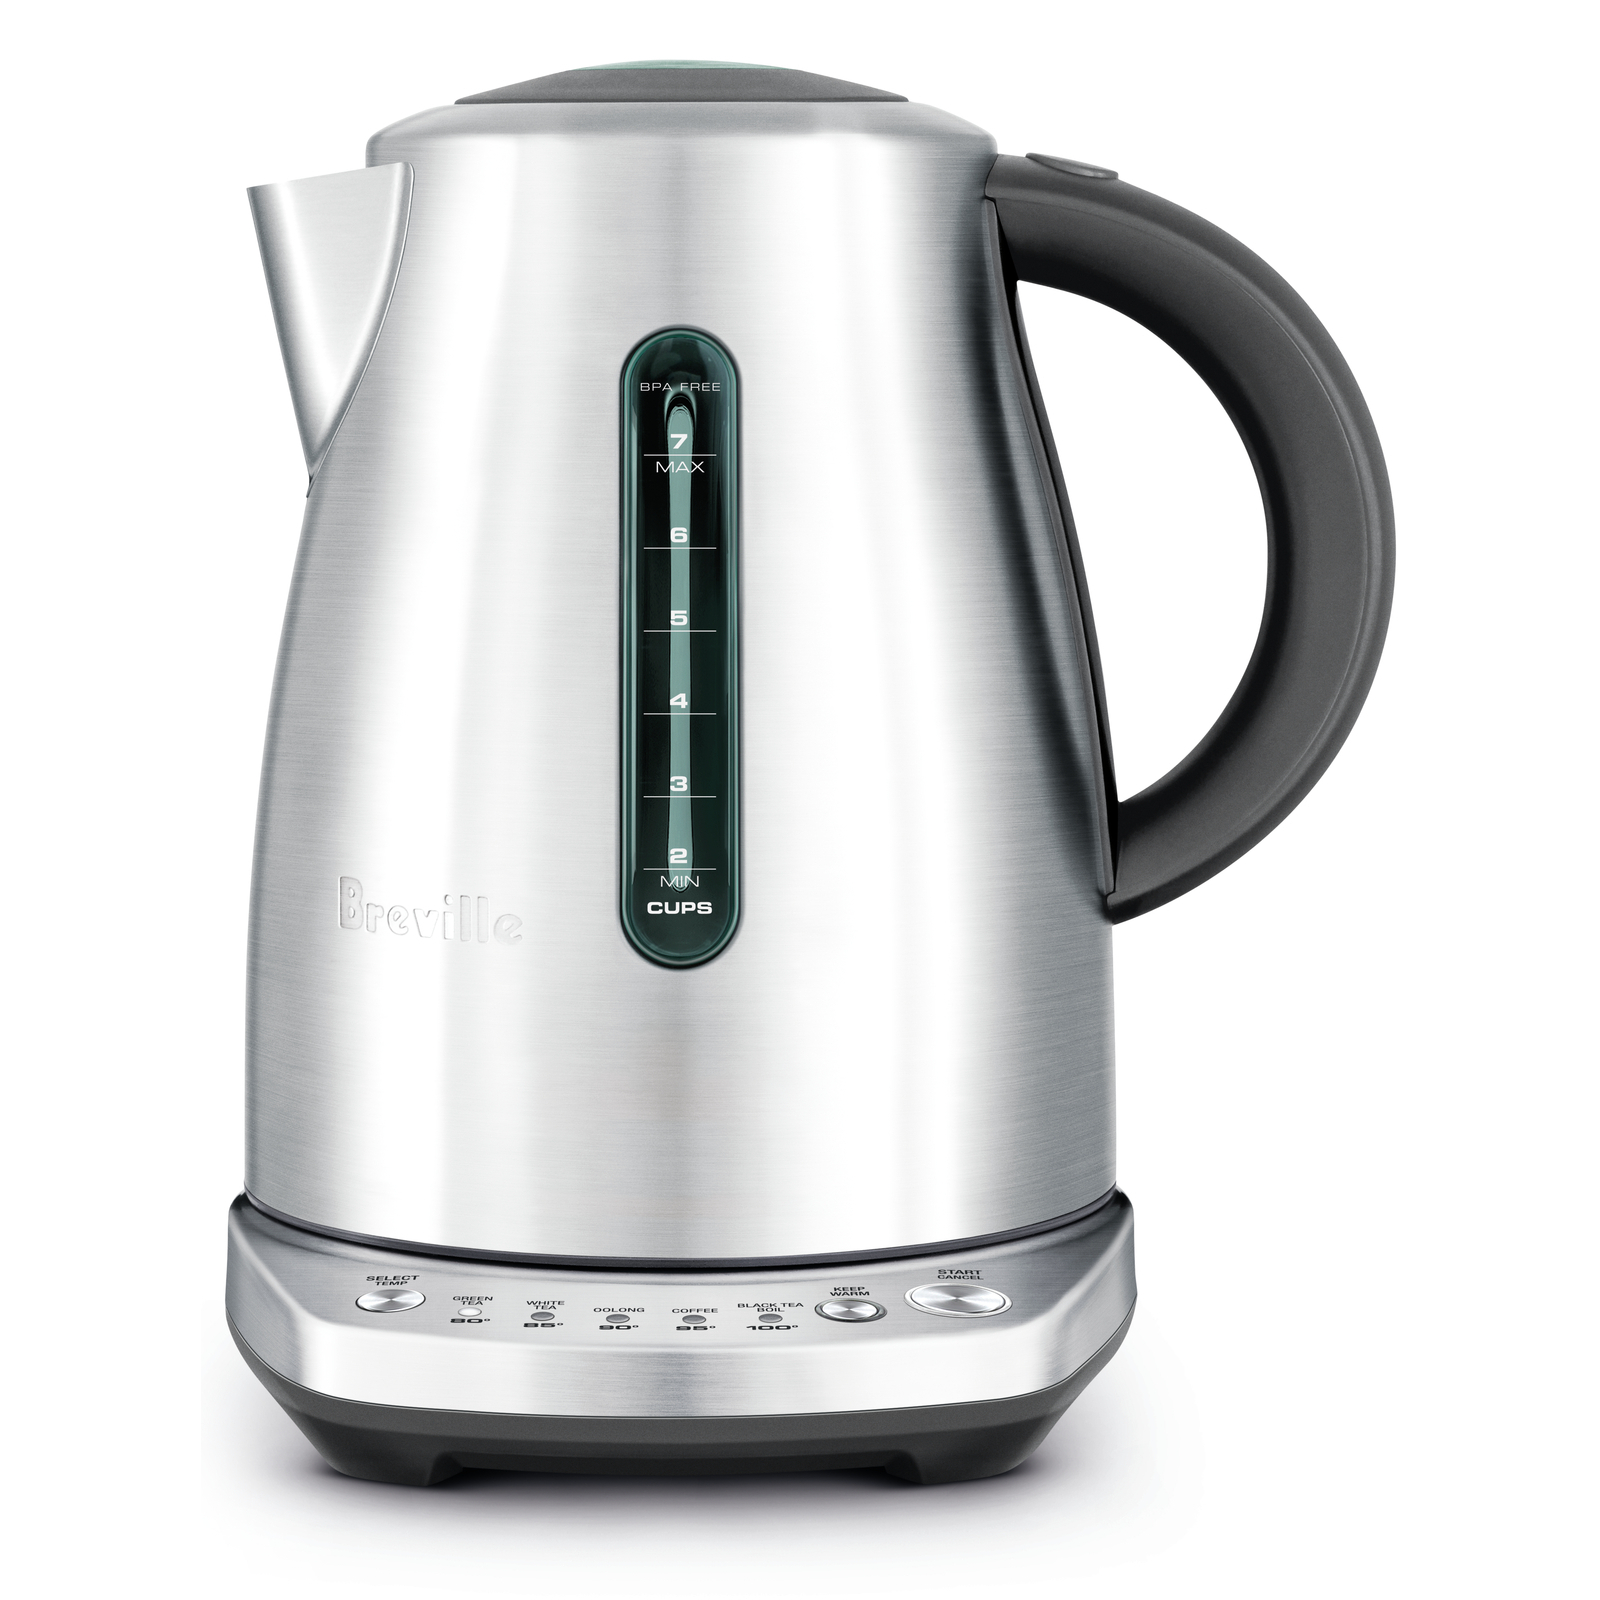 Breville Temp Select Stainless Steel 7.5 Cup Tea Kettle